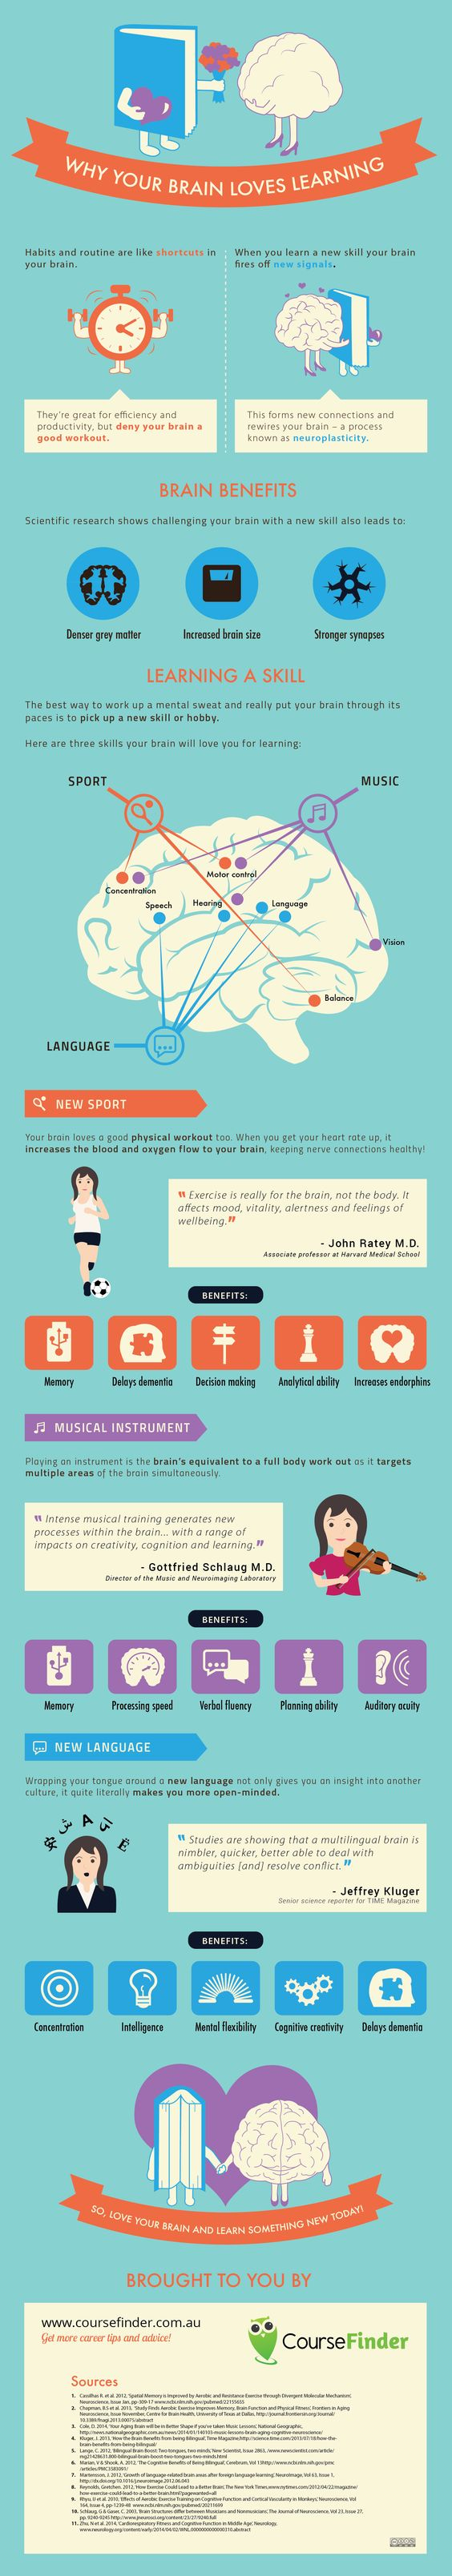 Why Your Brain Loves Learning Infographic - http://elearninginfographics.com/brain-loves-learning-infographic/